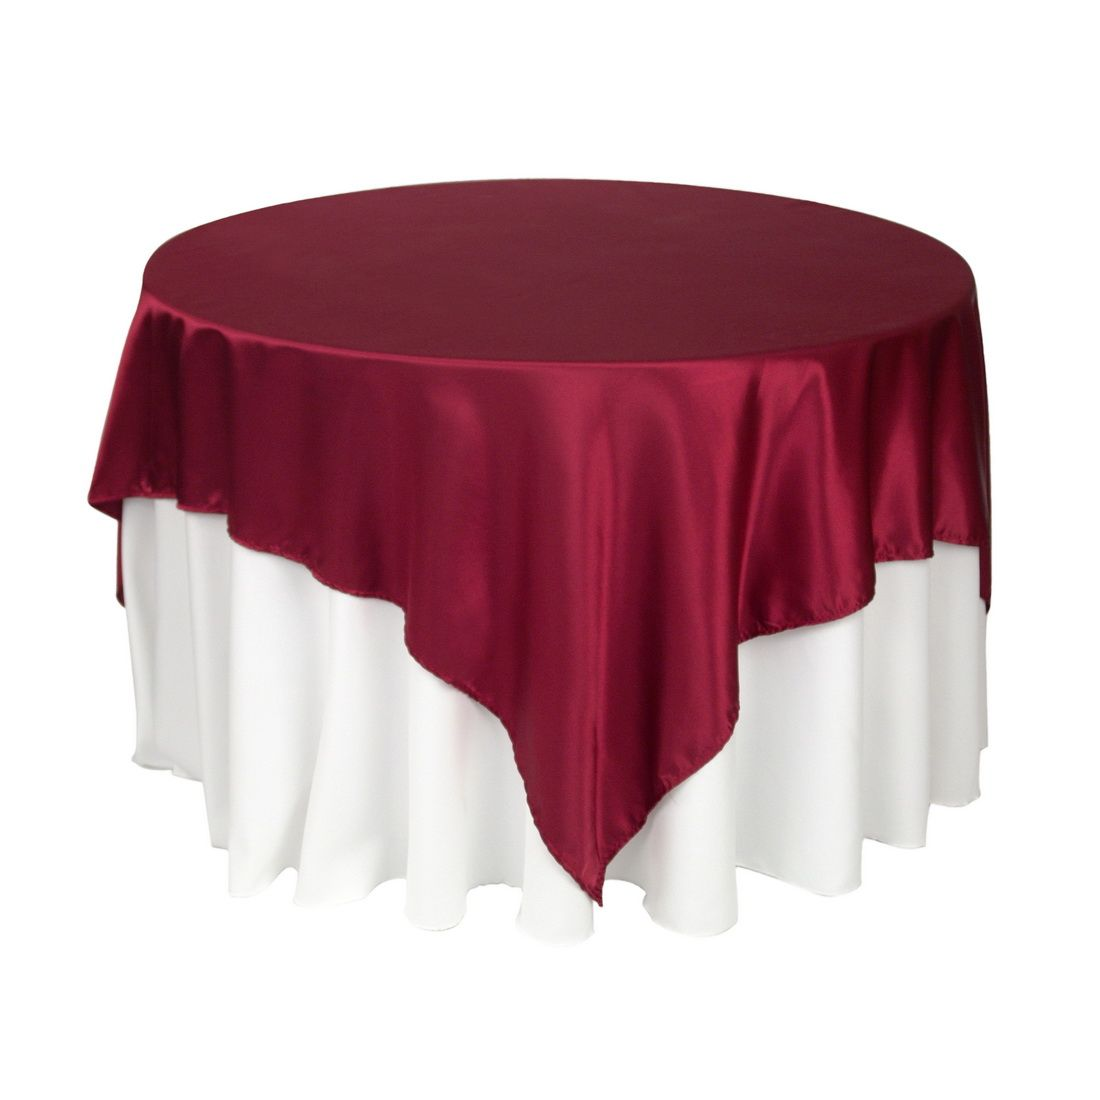 Tablecloth table linen cloth wedding table cover for Table linens